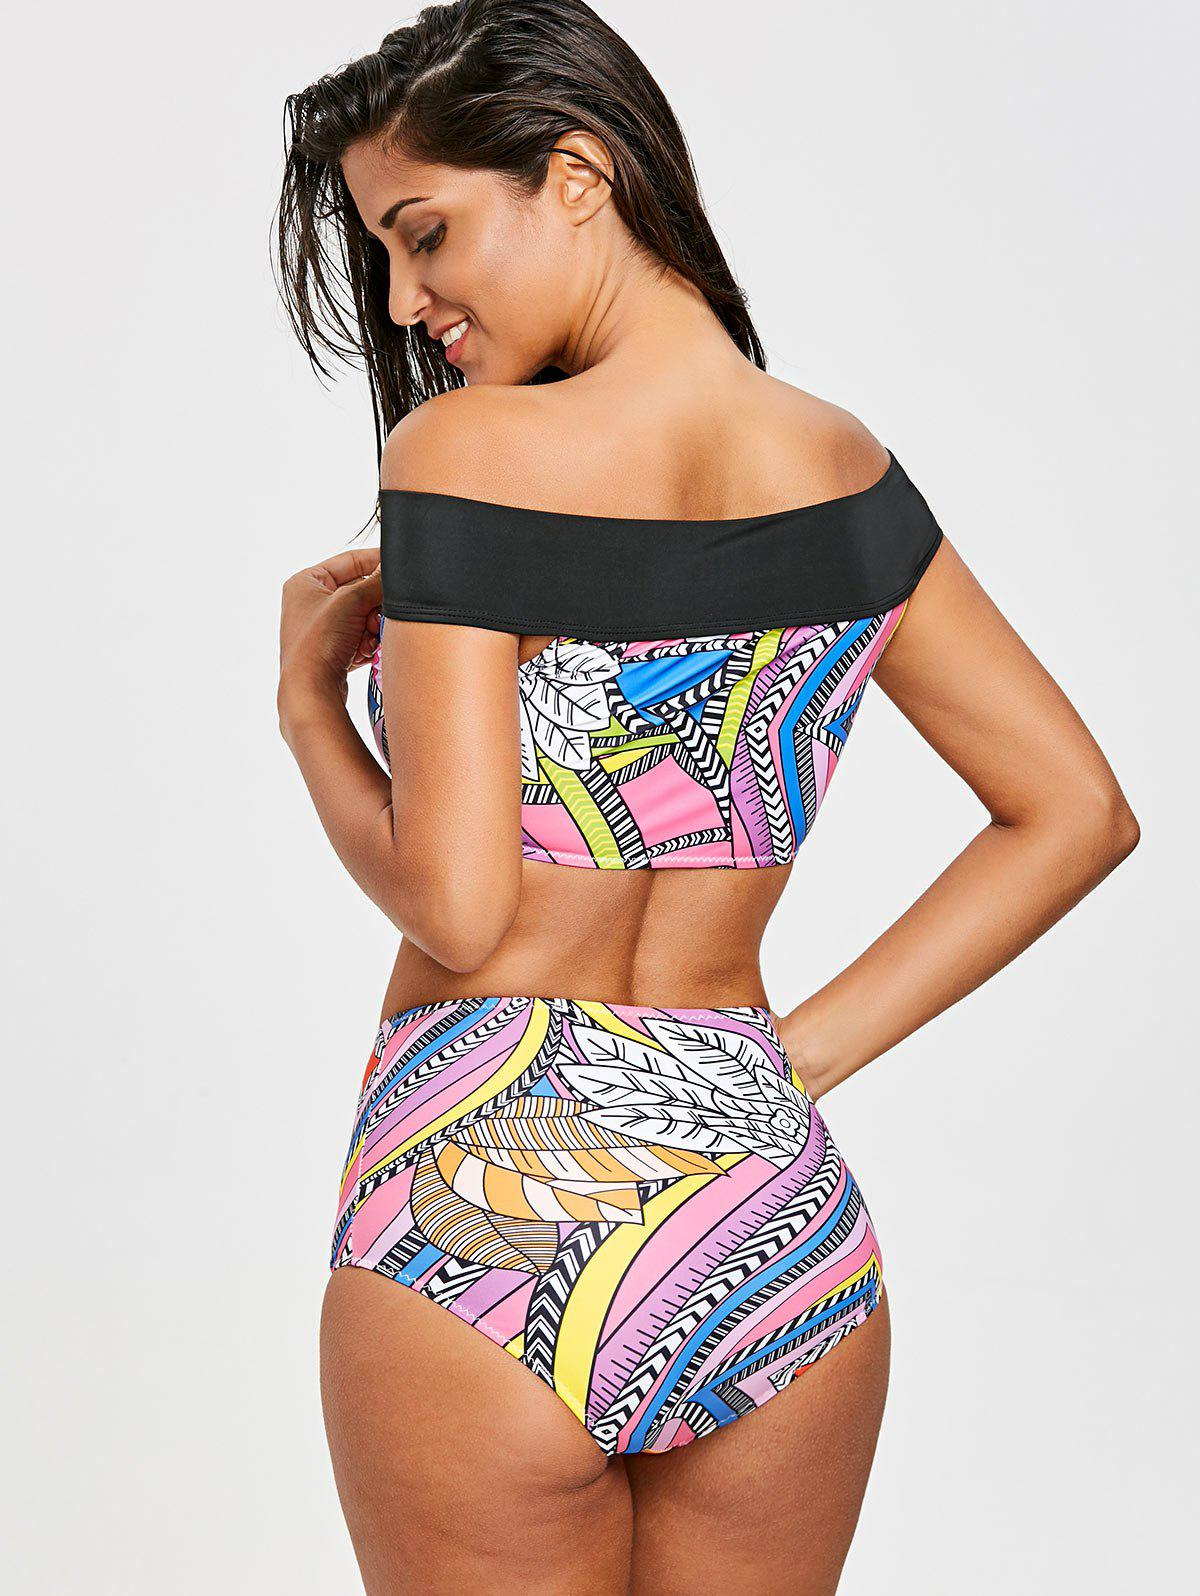 Tribal Off The Shoulder Bikini Top and Bottom Set - COLORMIX S